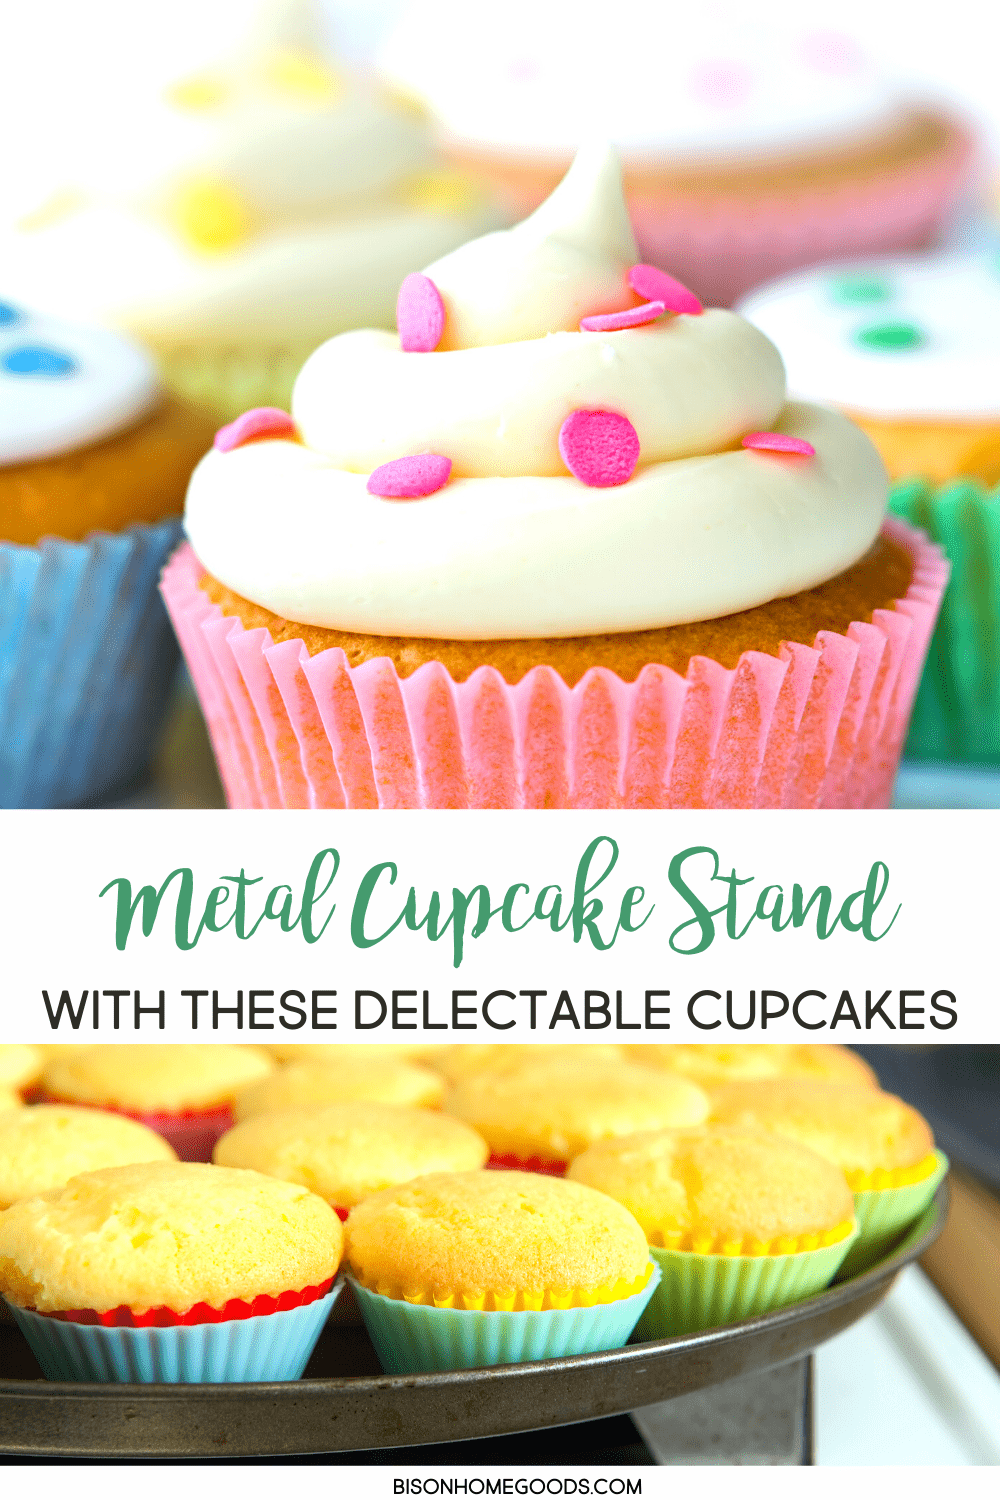 Fill Your Metal Cupcake Stand with These Delectable Cupcakes